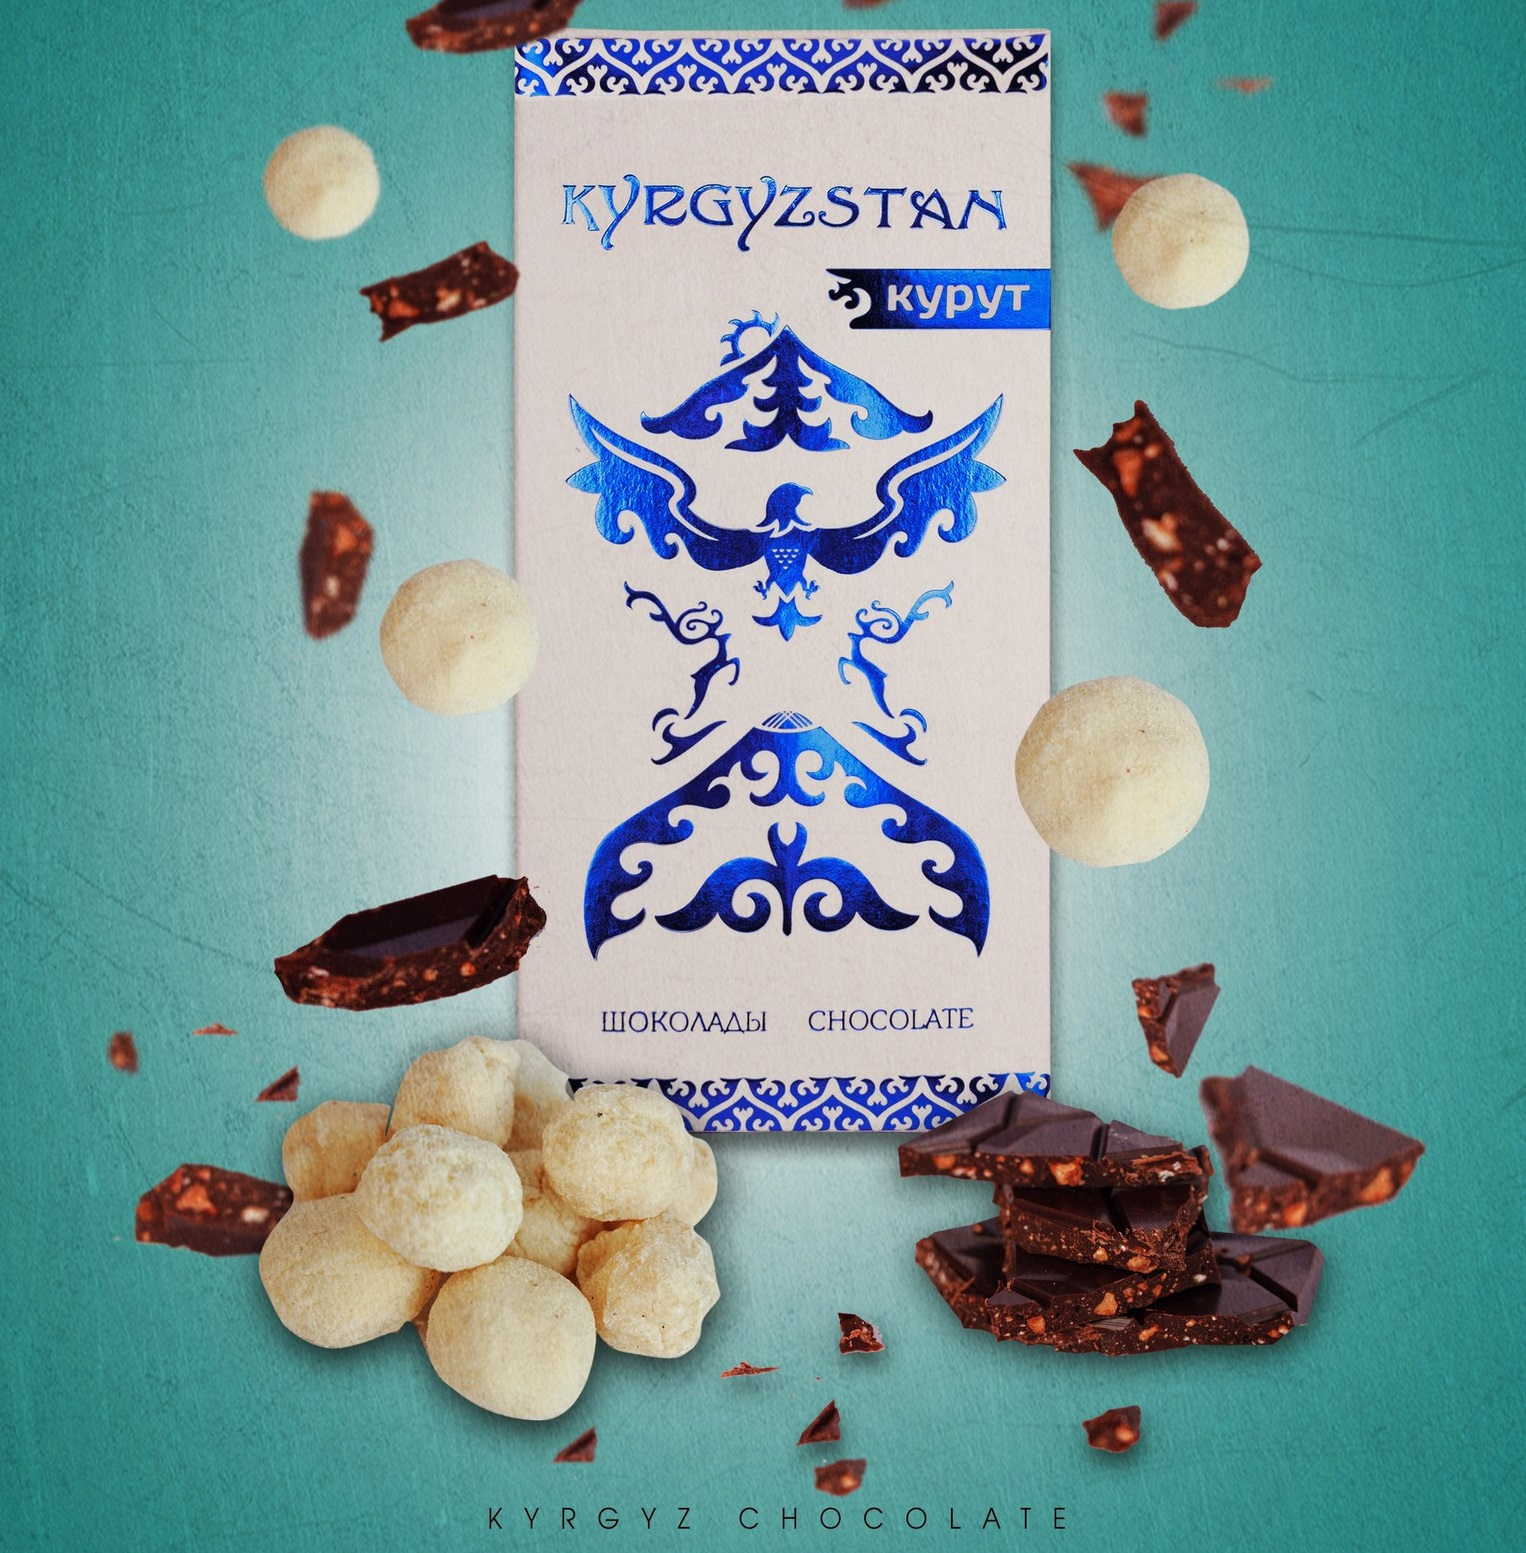 A chocolate bar with kurut (salty dried yogurt).